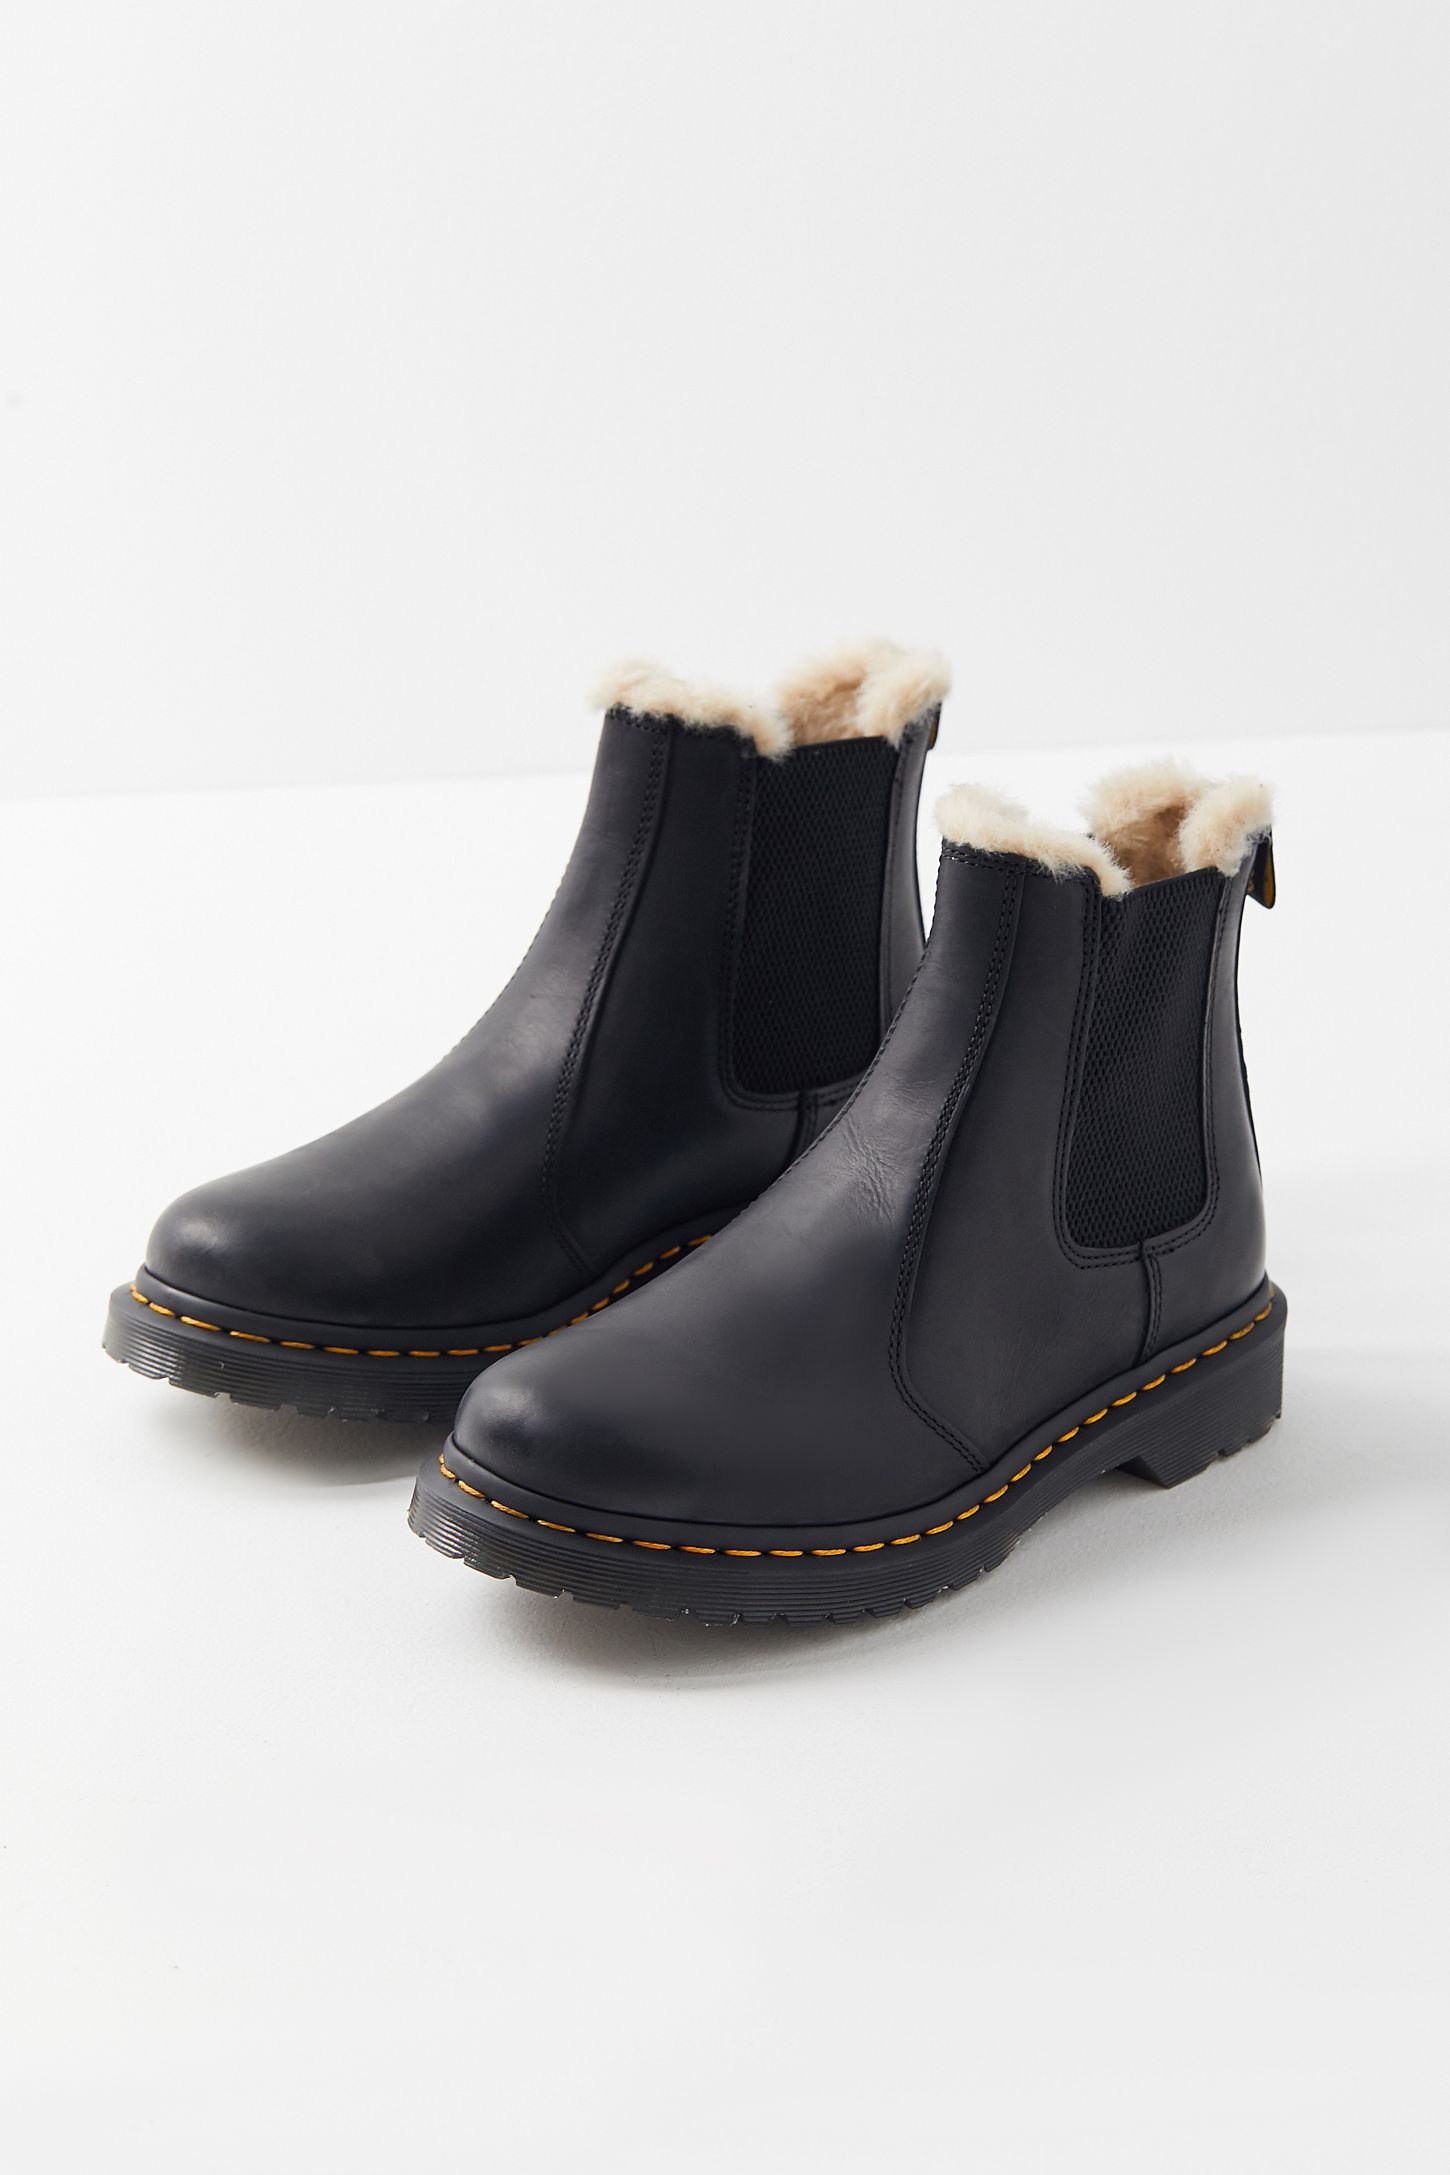 2d9a0dff9b2 Dr. Martens 2976 Leonore Wyoming Boot